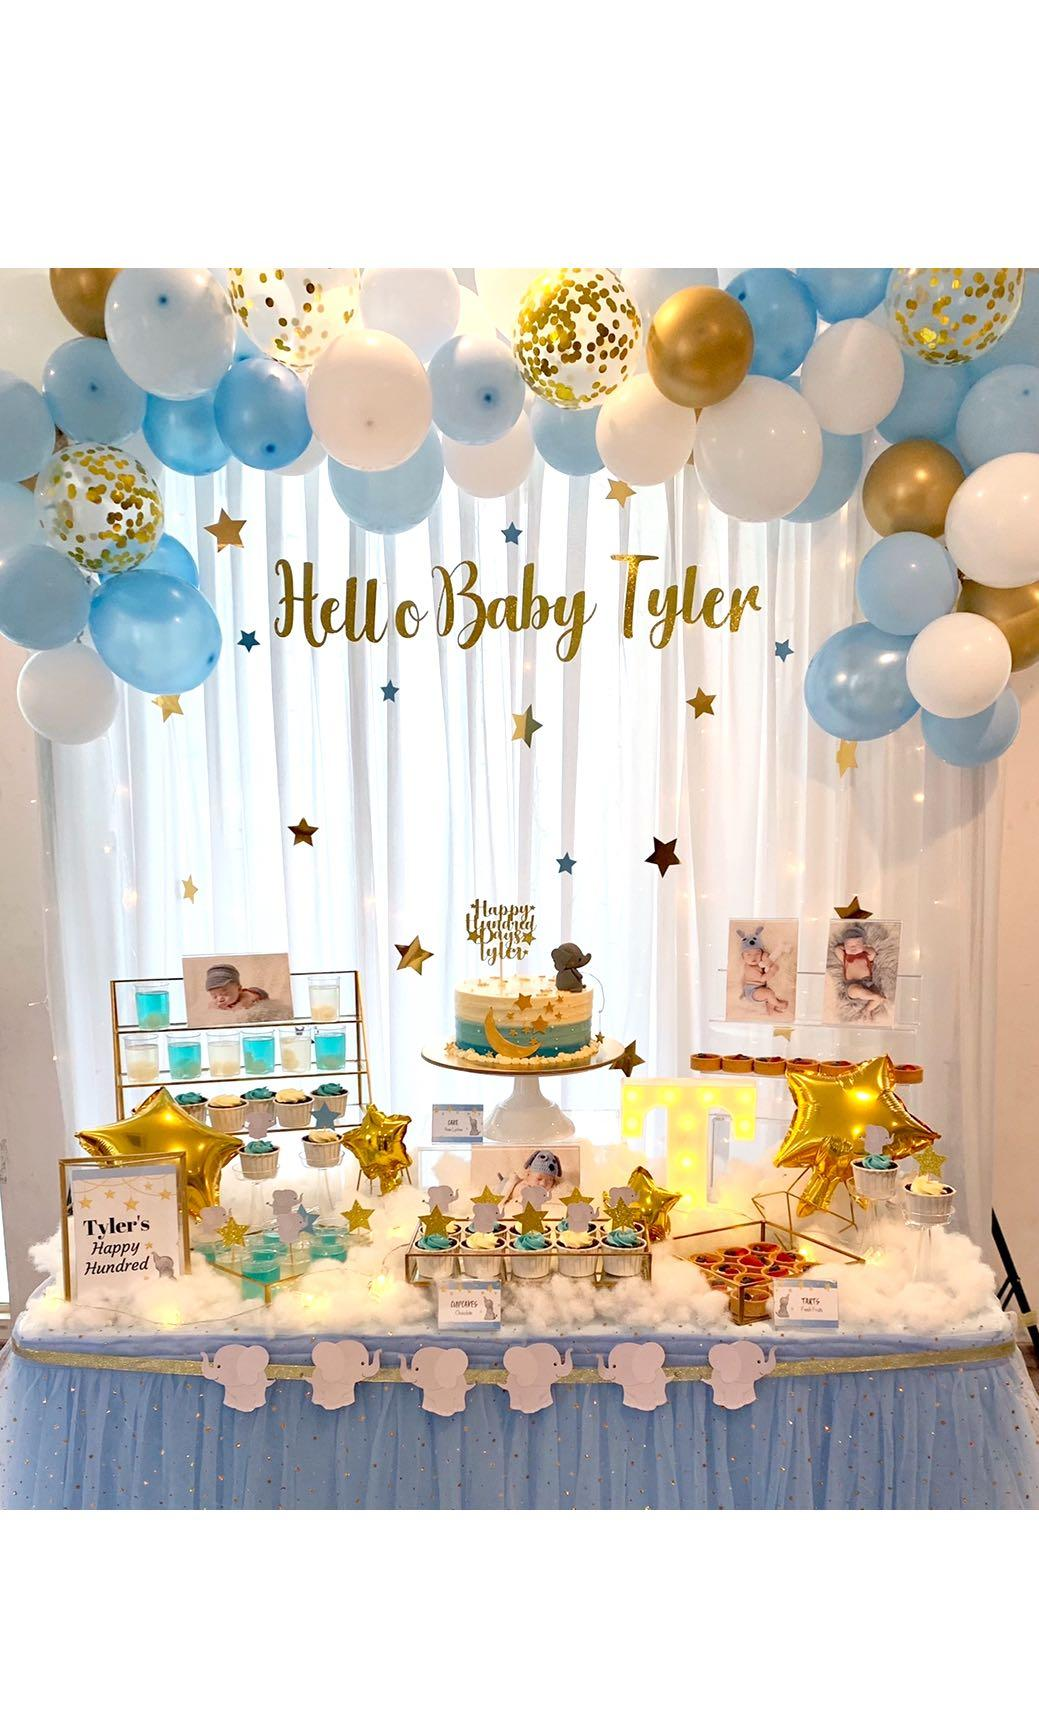 ⭐️ ALL inclusive dessert table package